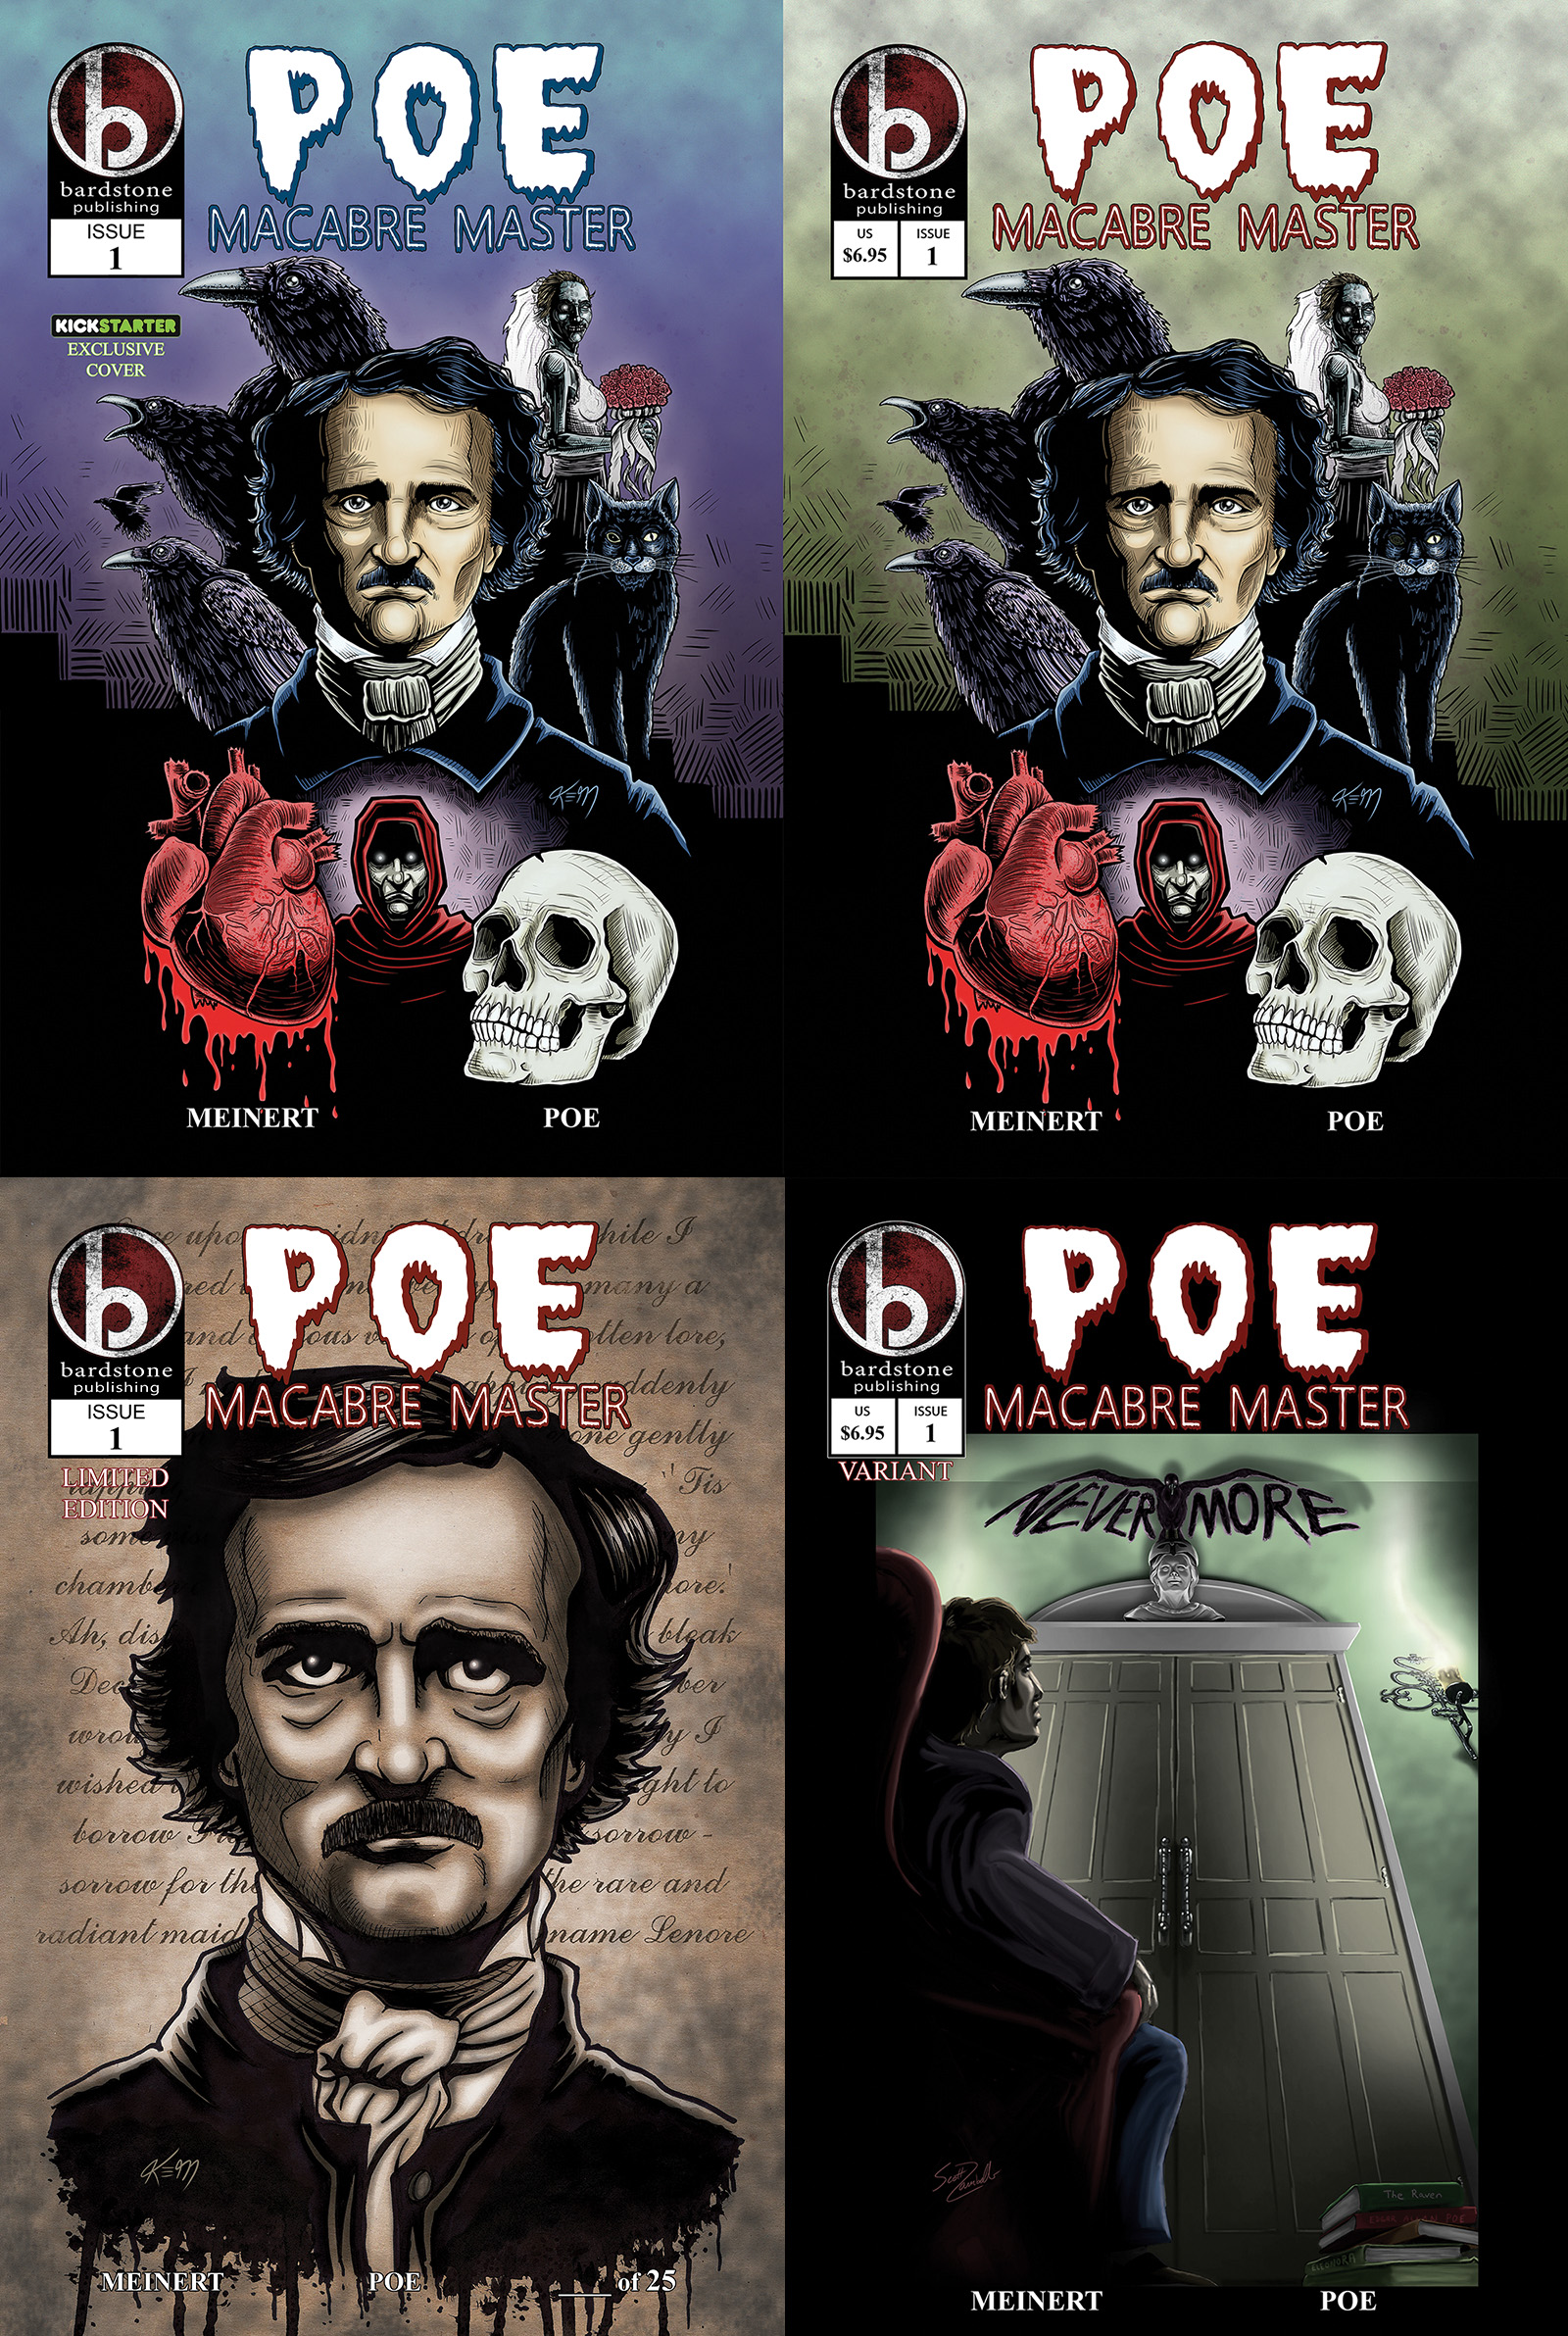 Poe Macabre Master issue #1 covers